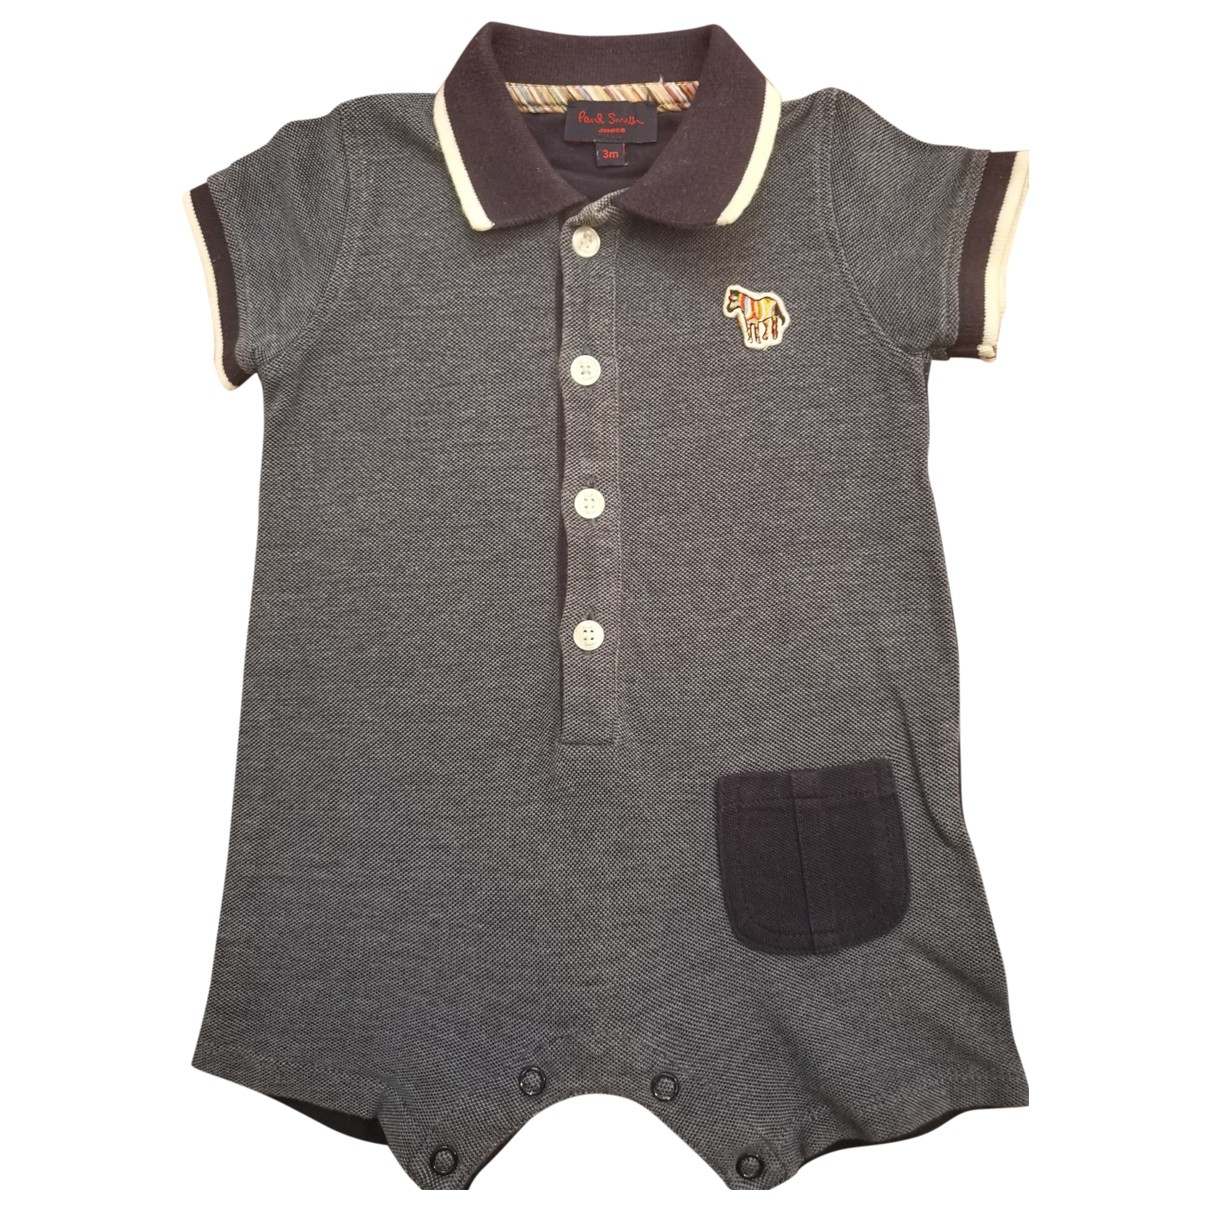 Paul Smith \N Blue Cotton Outfits for Kids 3 months - up to 60cm FR